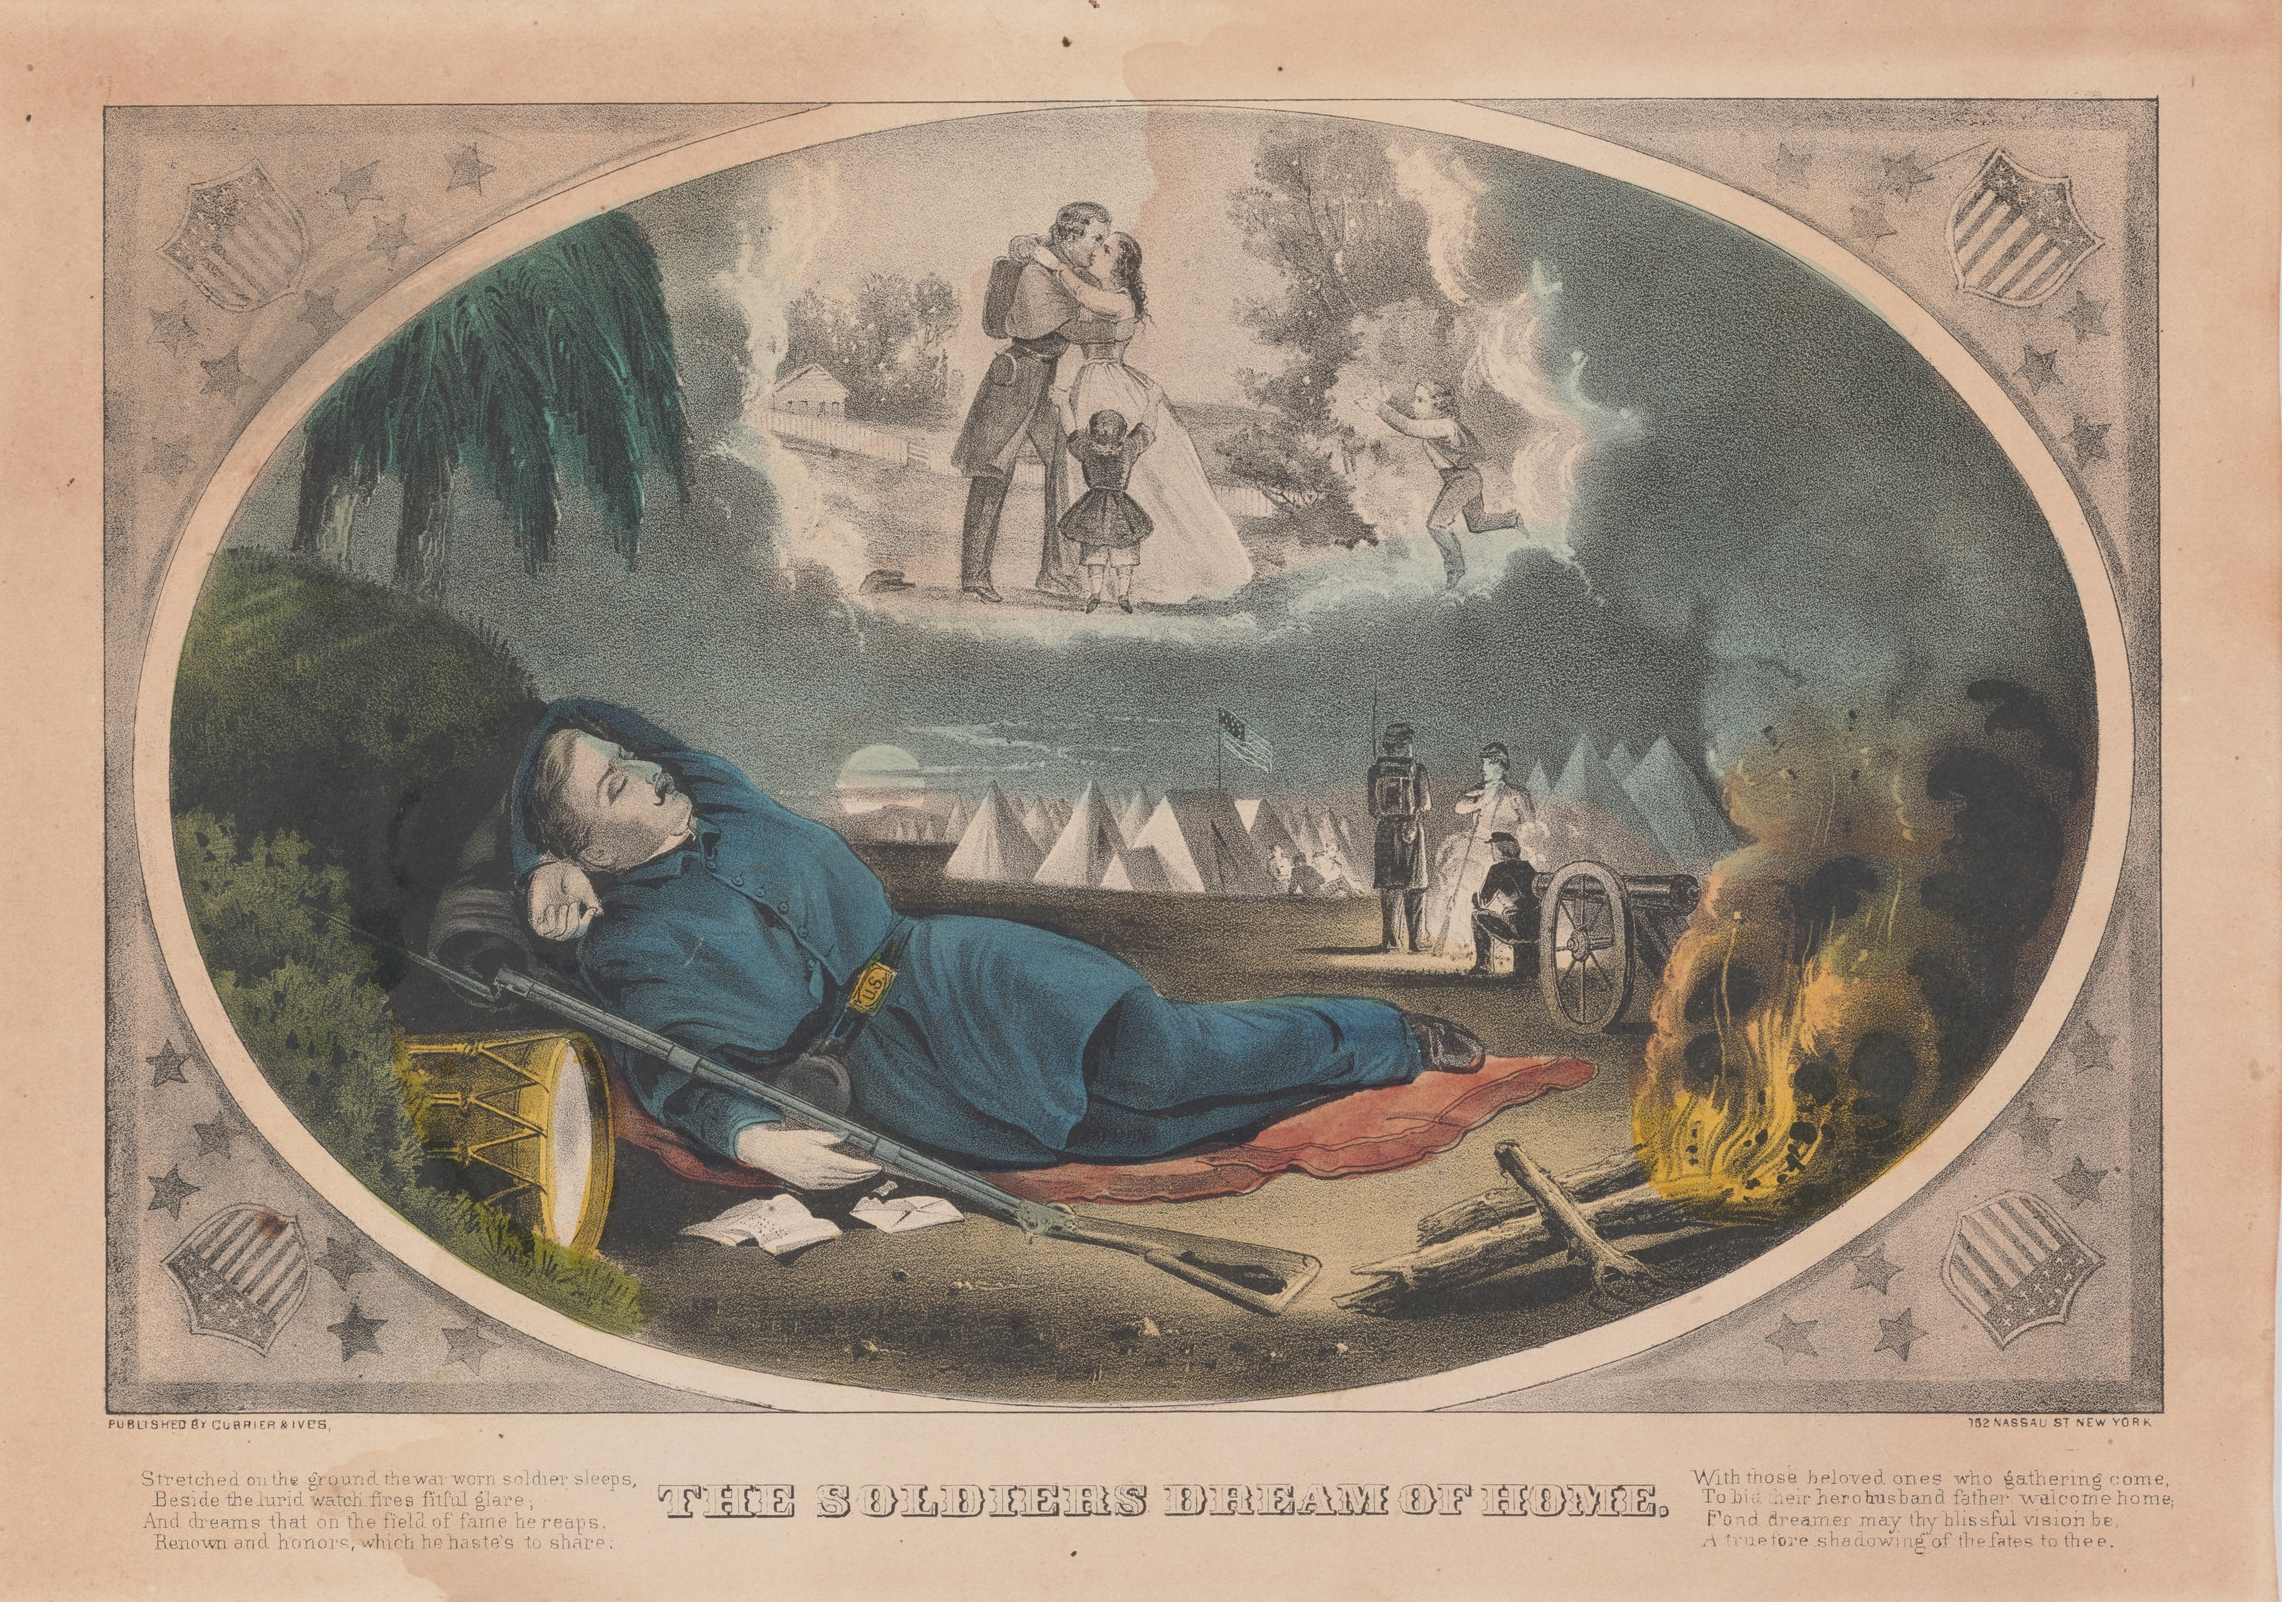 A soldier, napping and dreaming of his lady love at home. Little does he know that there might be a lady napping beside him, or boiling salt horse next to that nearby fire.   Courtesy of The Huntington Library